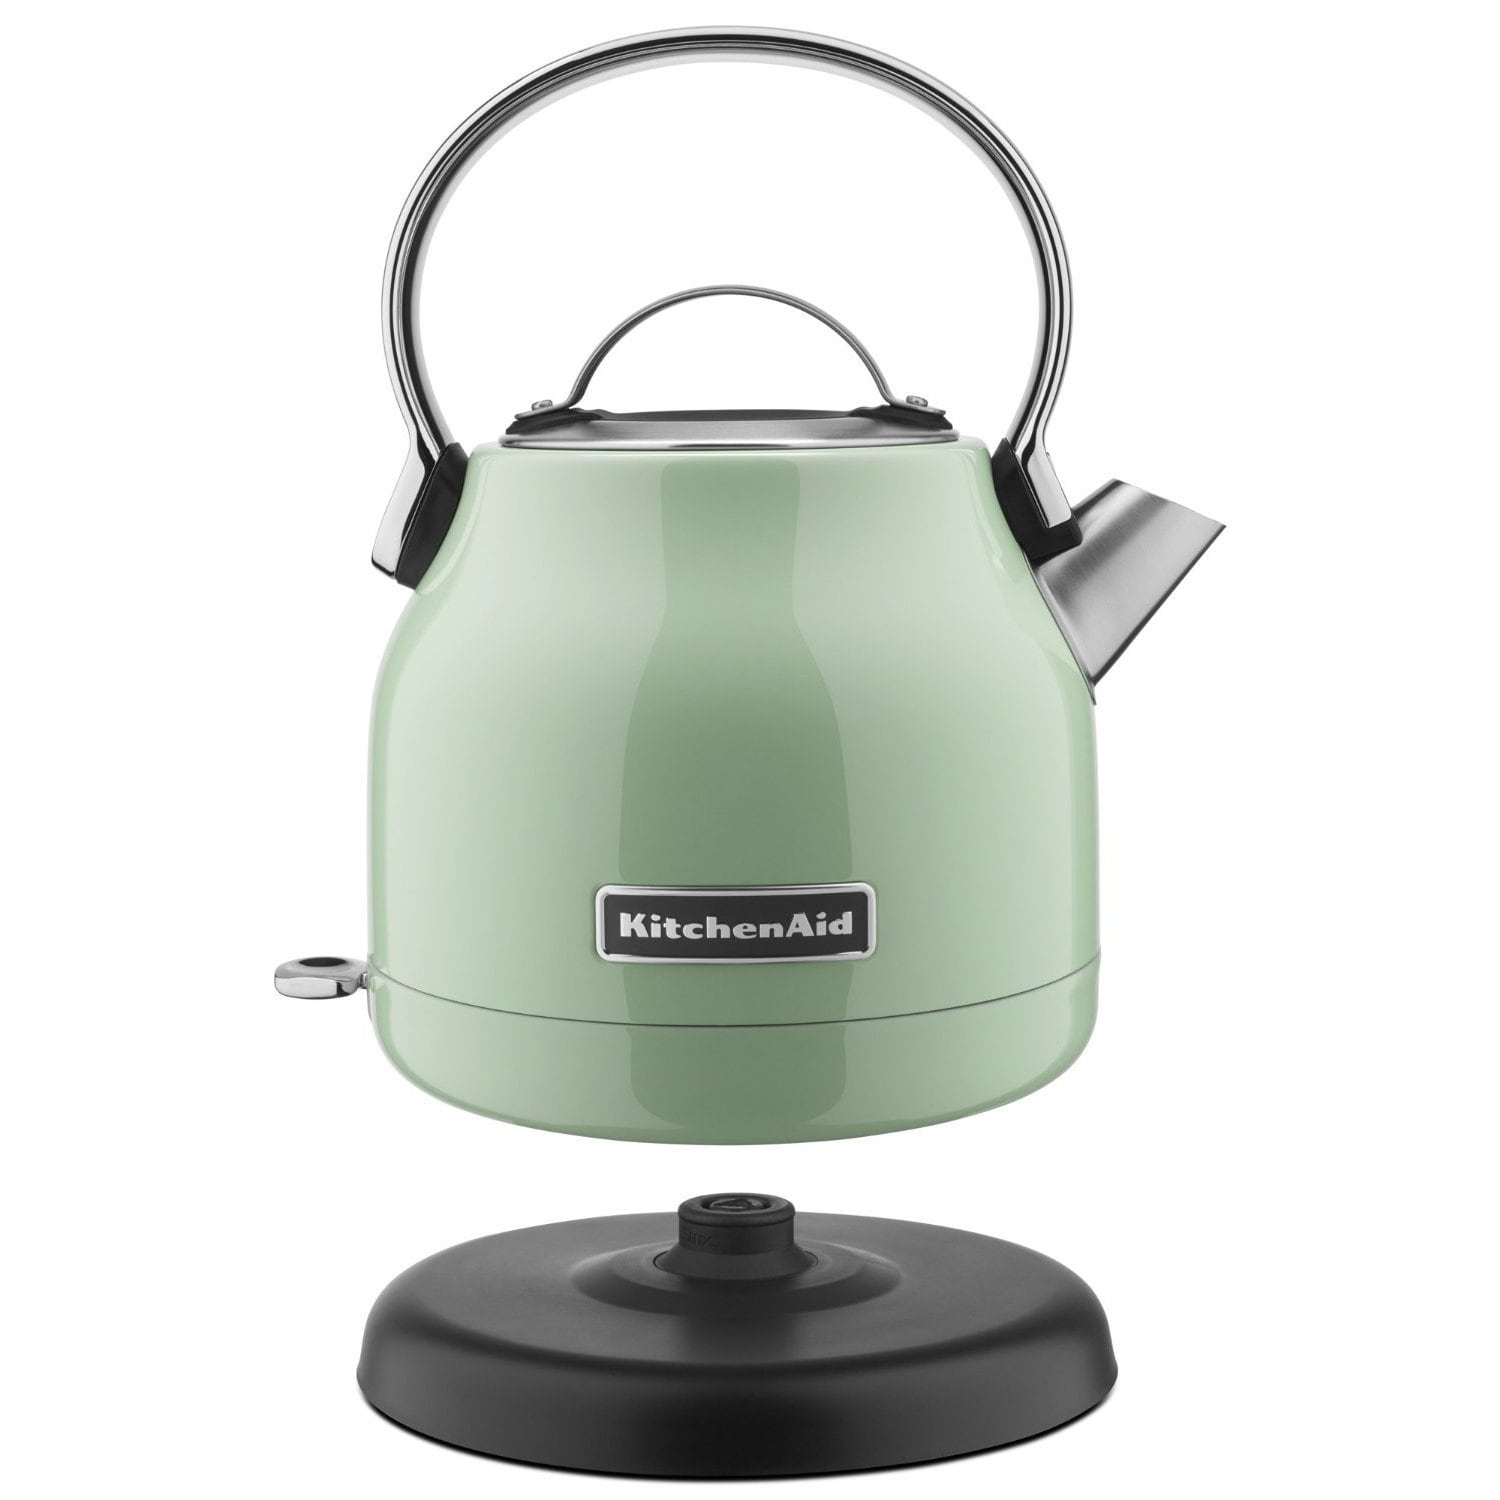 KitchenAid KEK1222PT 1.25-Liter Electric Kettle, Pistachio